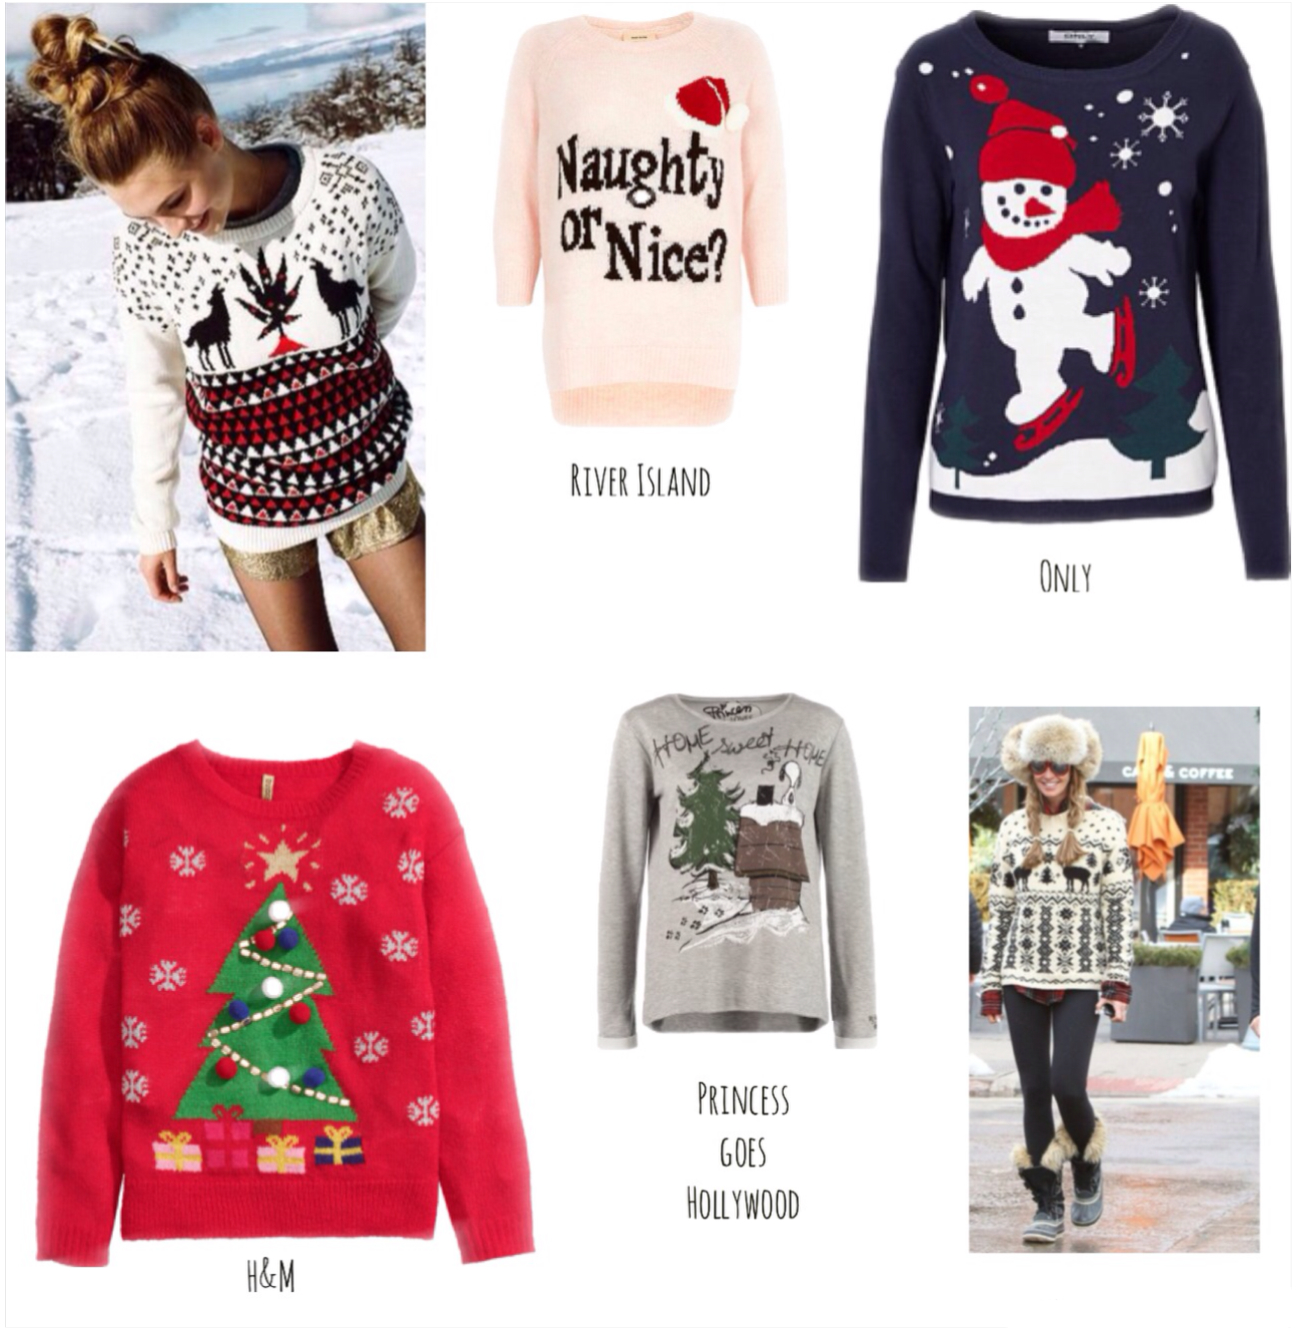 streetstyle Christmas sweaters online shopping blogforshops